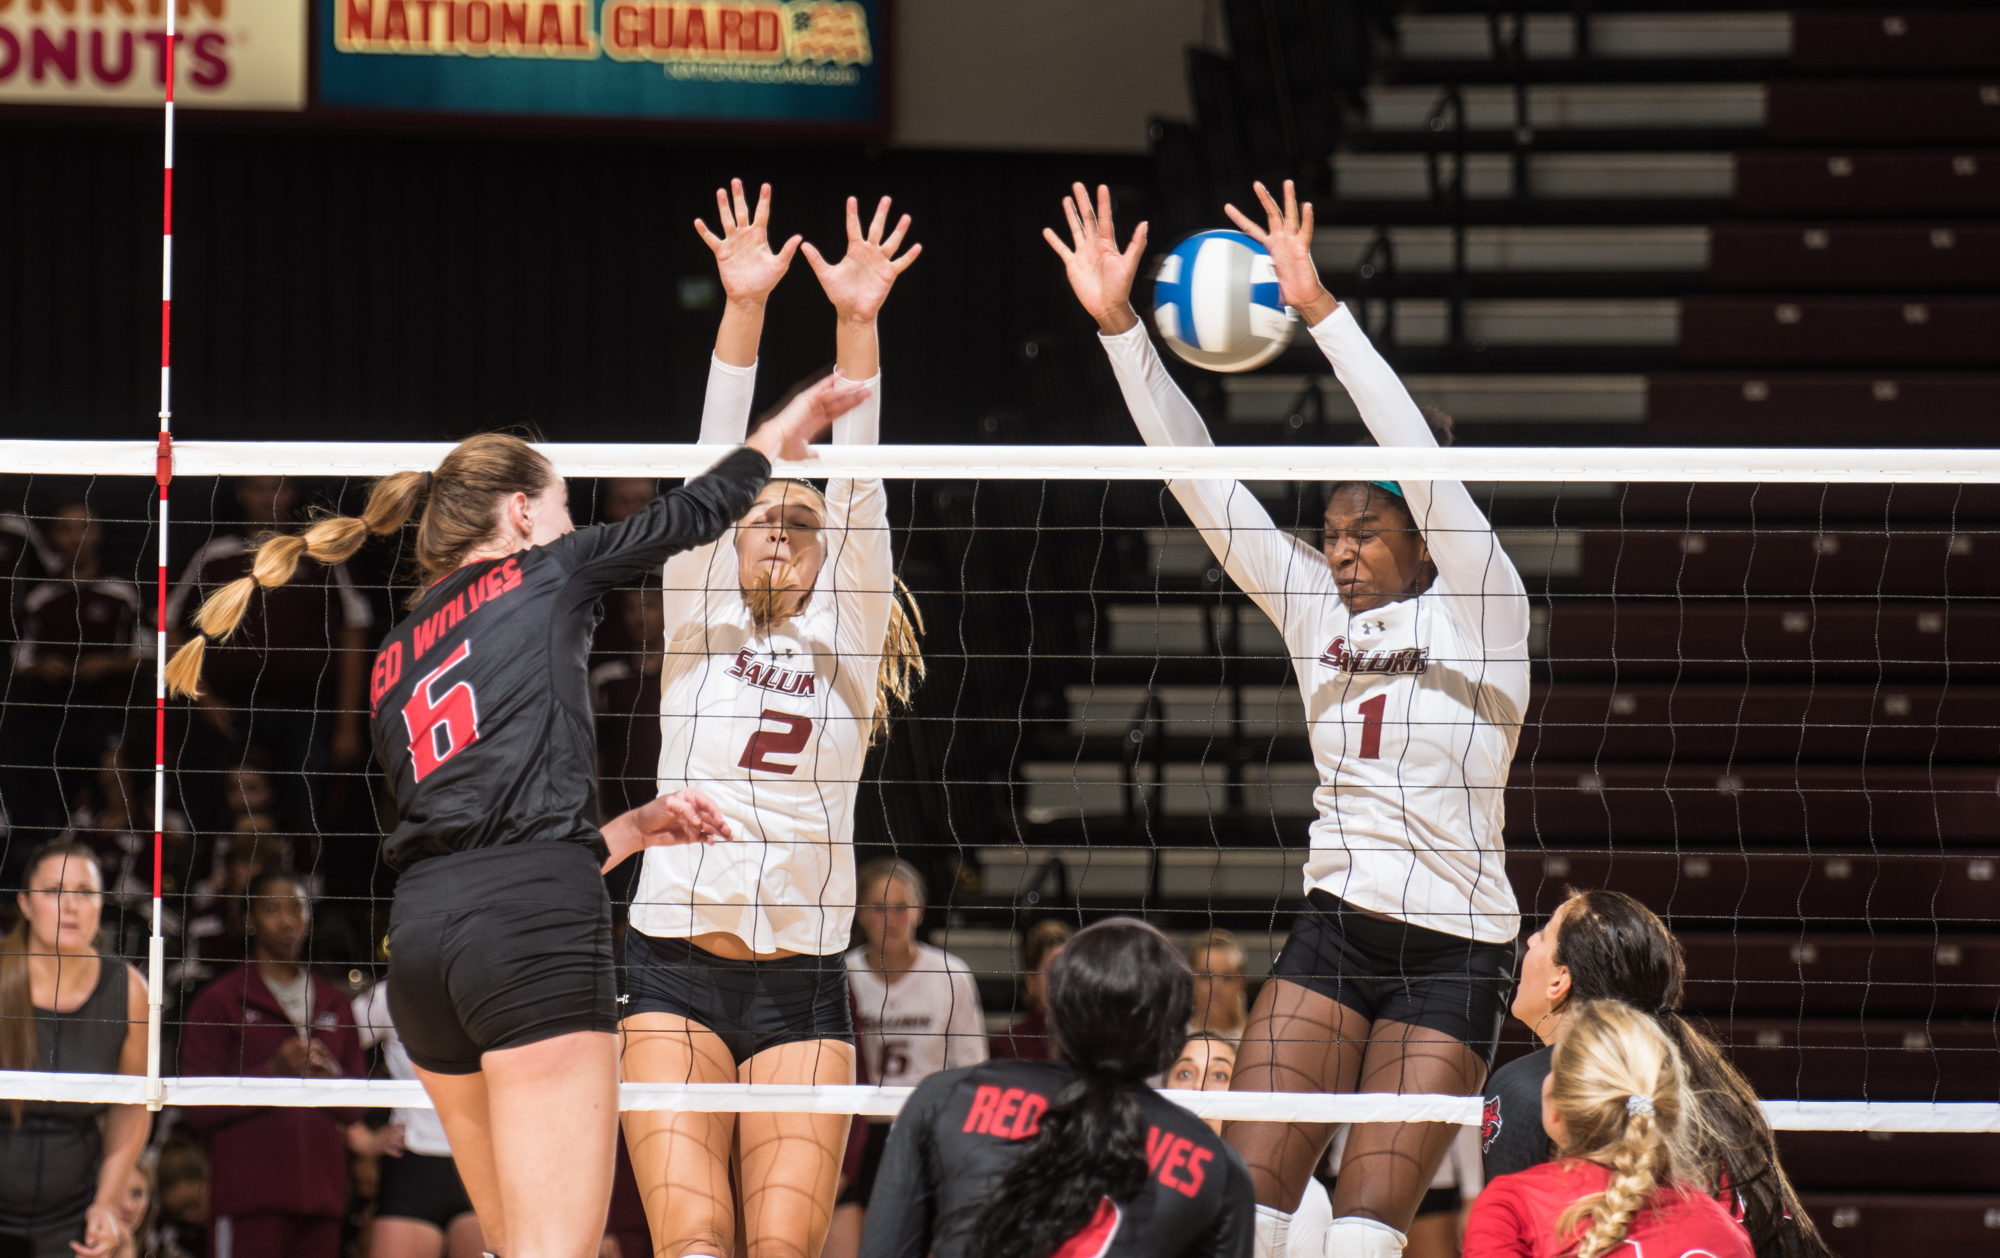 SIU's volleyball team's season is underway.